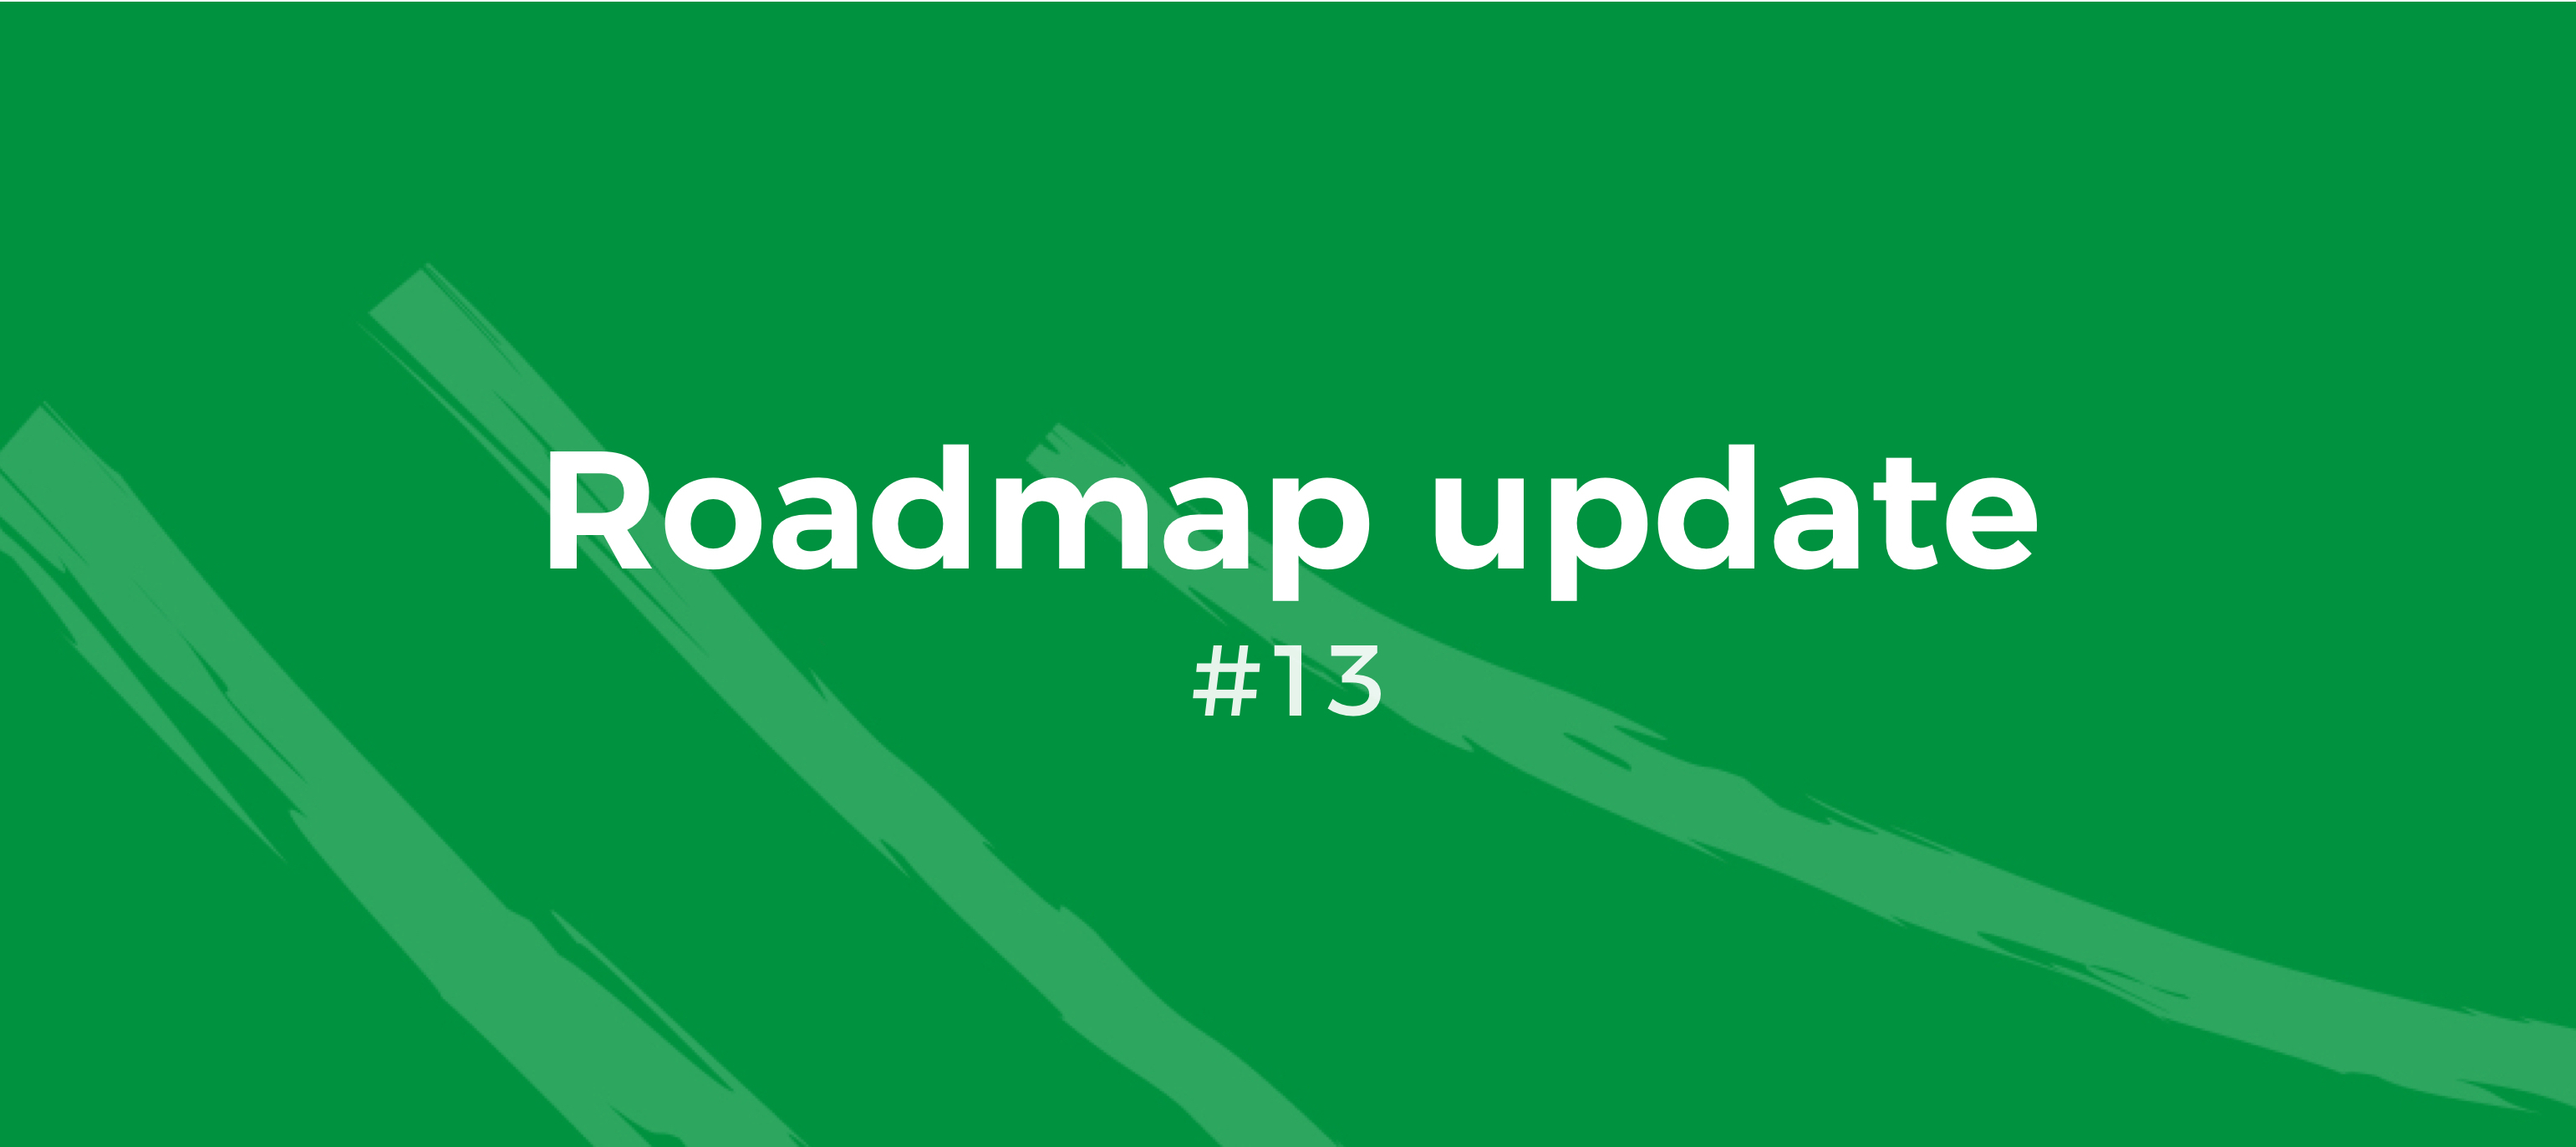 Roadmap Update #13